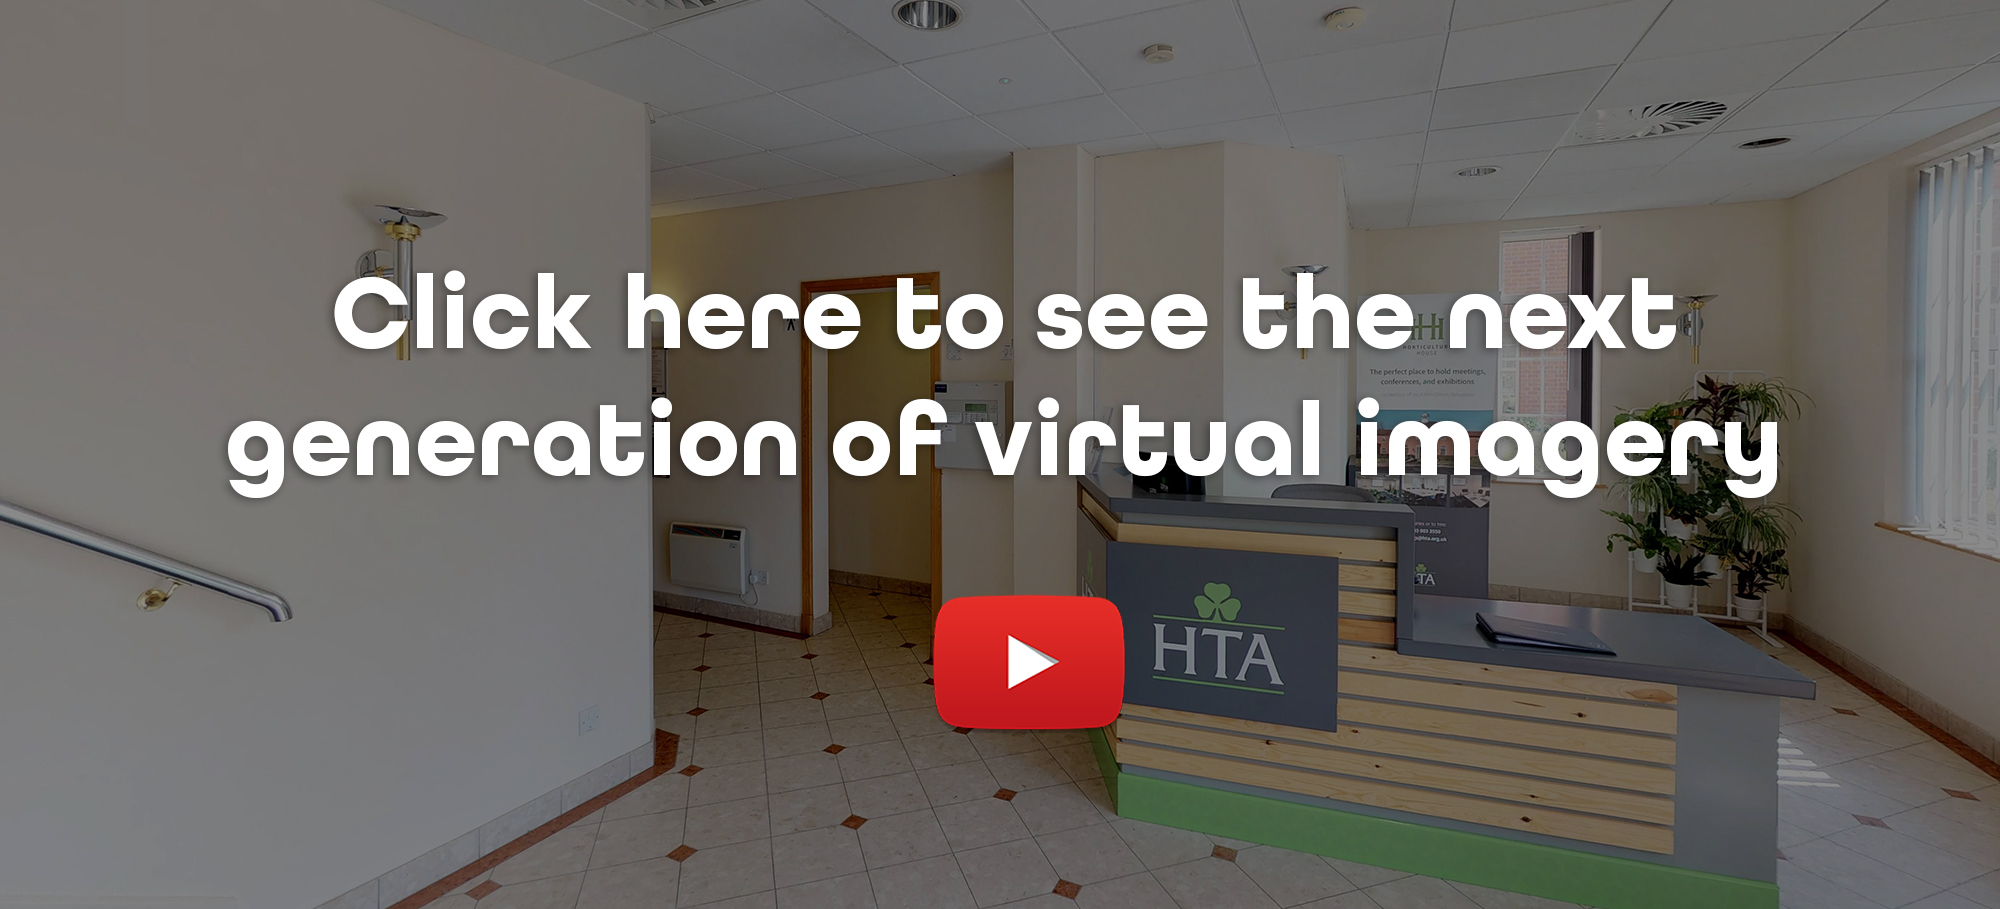 virtual imagery tour HTA